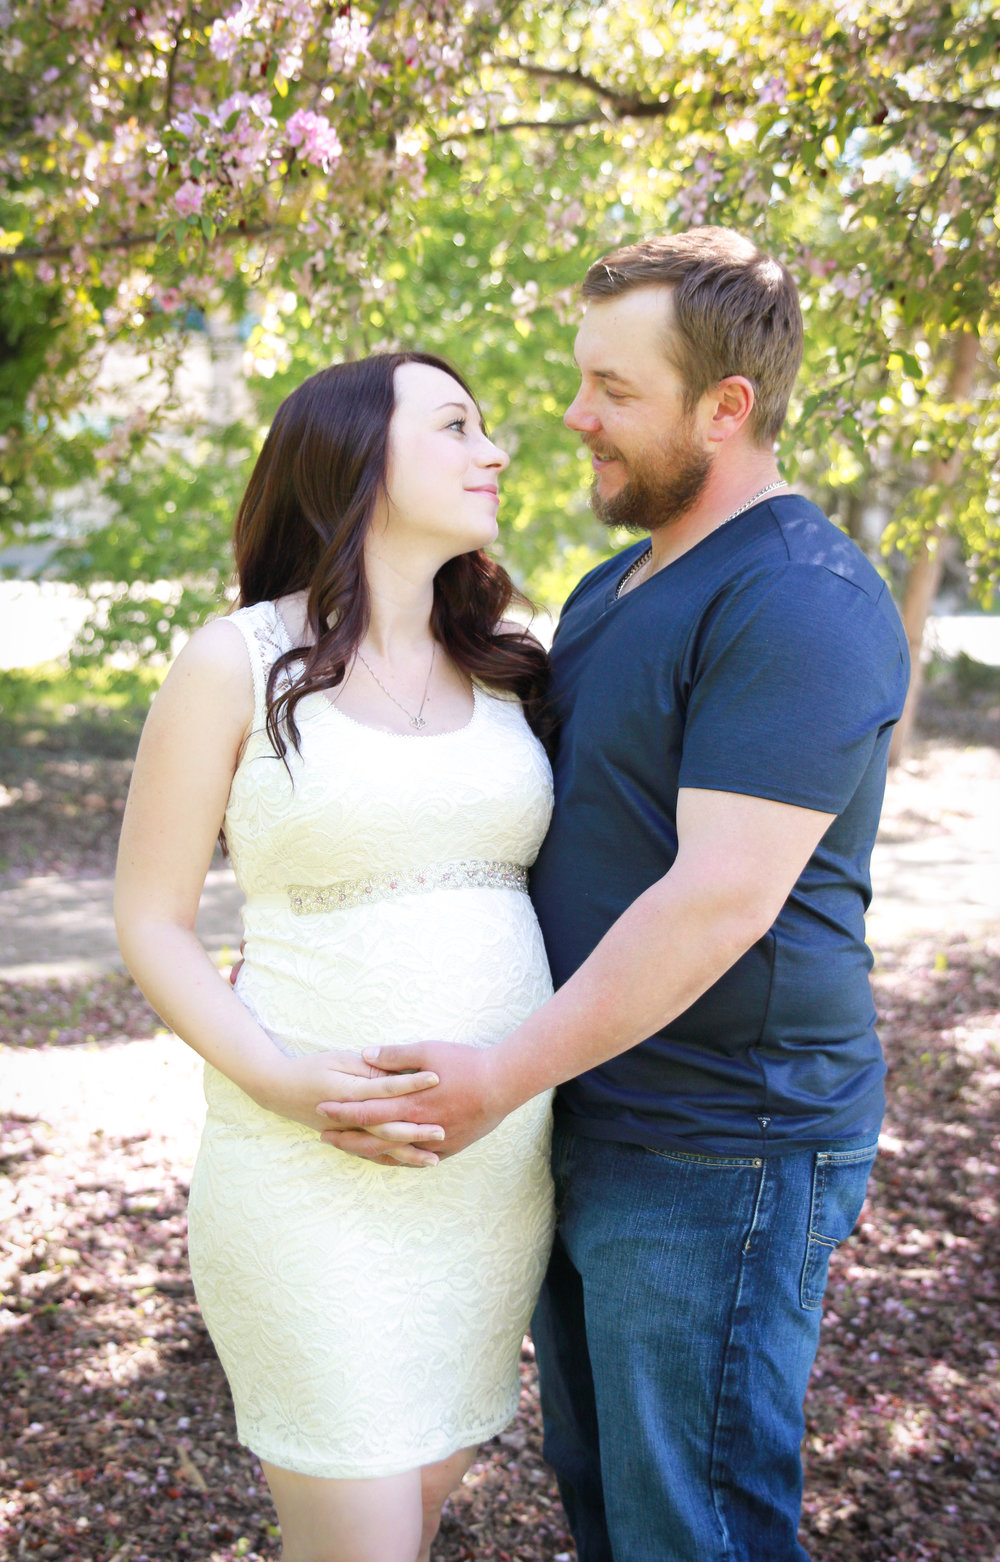 M&P {Expecting!}_WEB-65.jpg